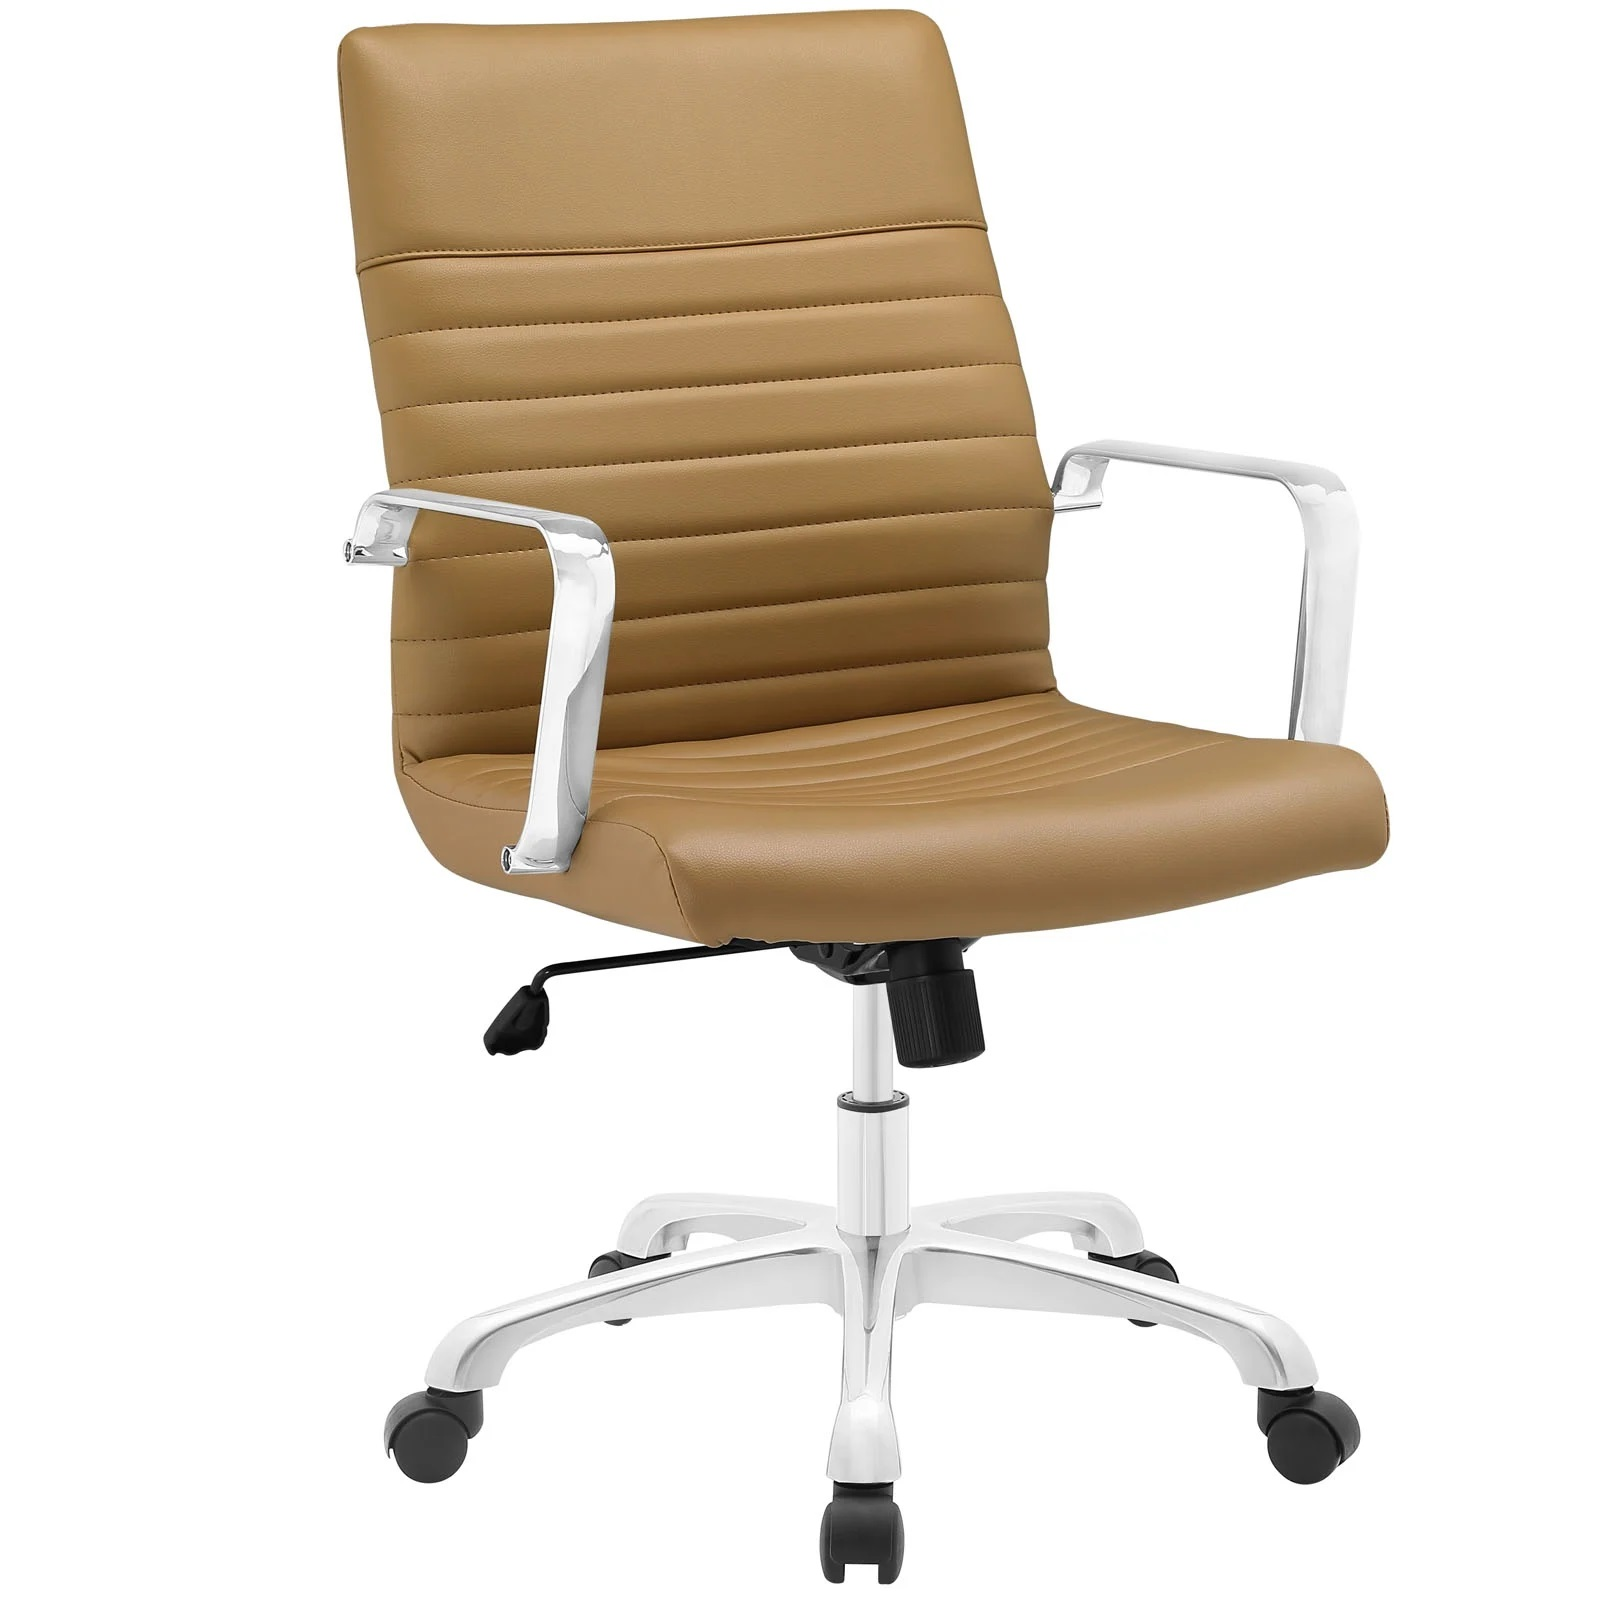 Mid Back Office Chair in Tan